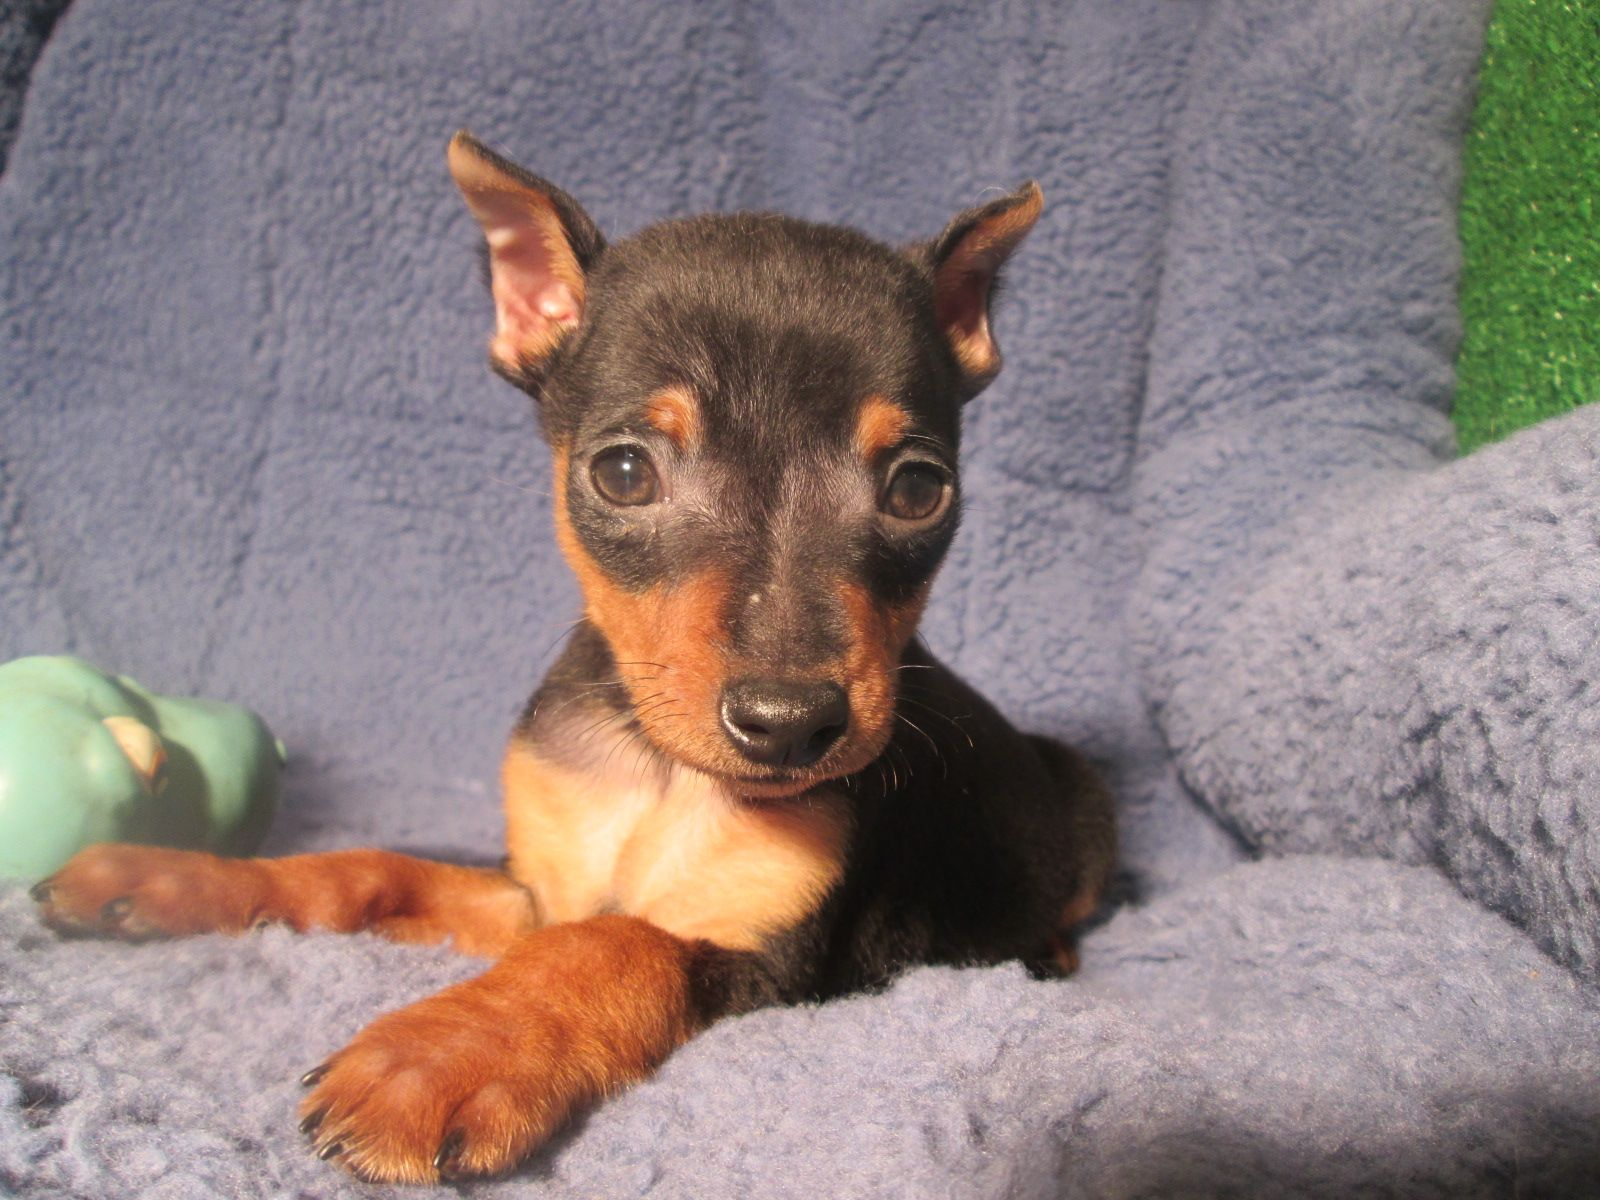 Magnificent Miniature Pincher Puppies Available 8 12 Weeks Of Age Permanent Shots And